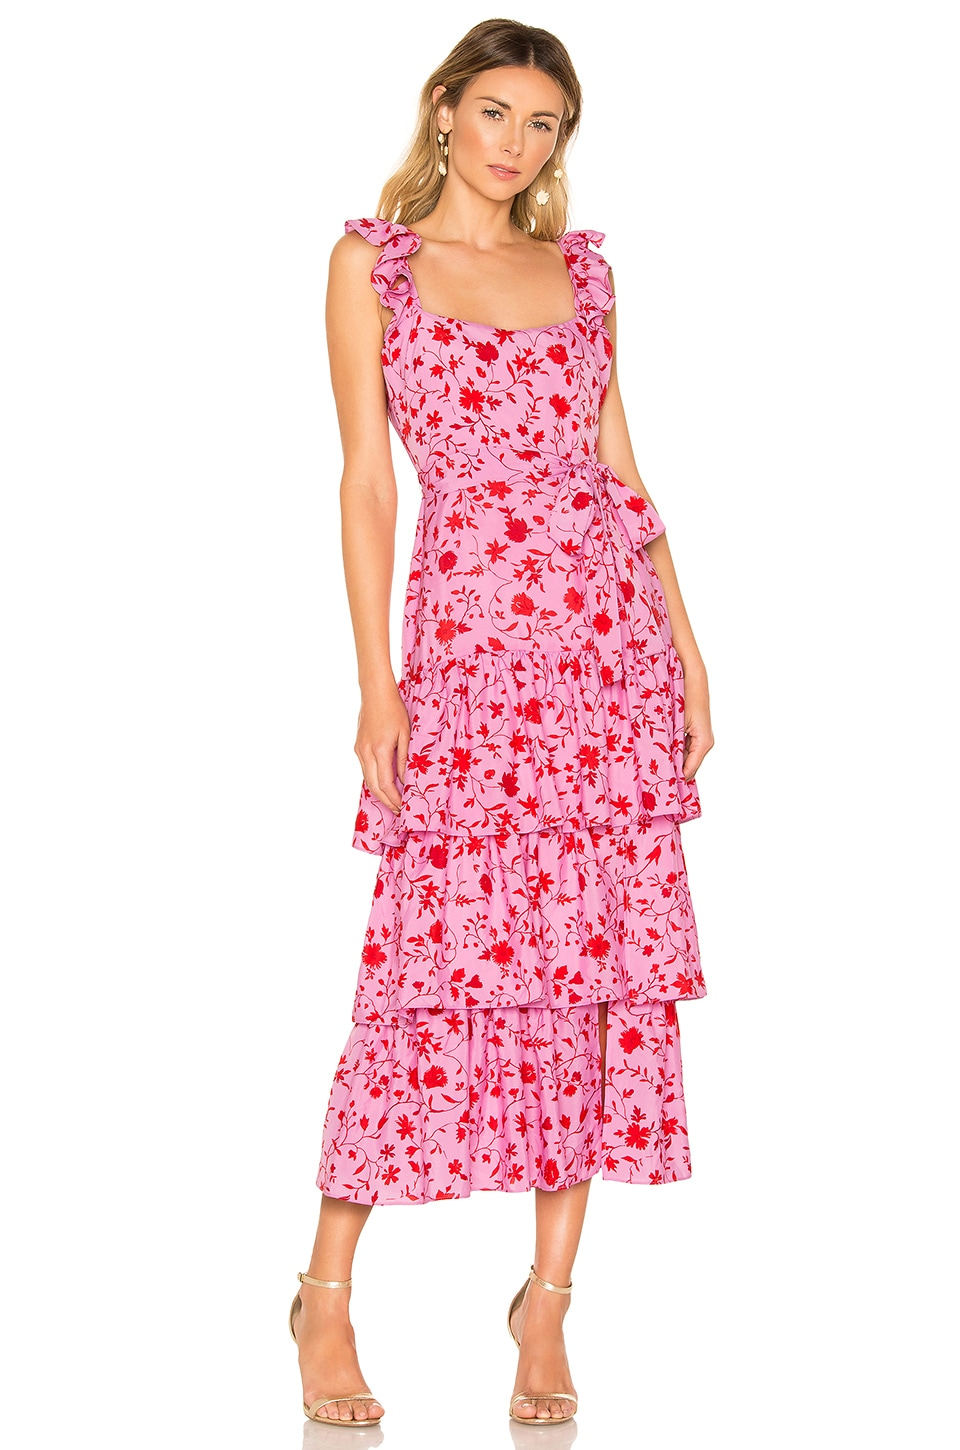 LIKELY Charlotte Dress in Red & Pink Multi